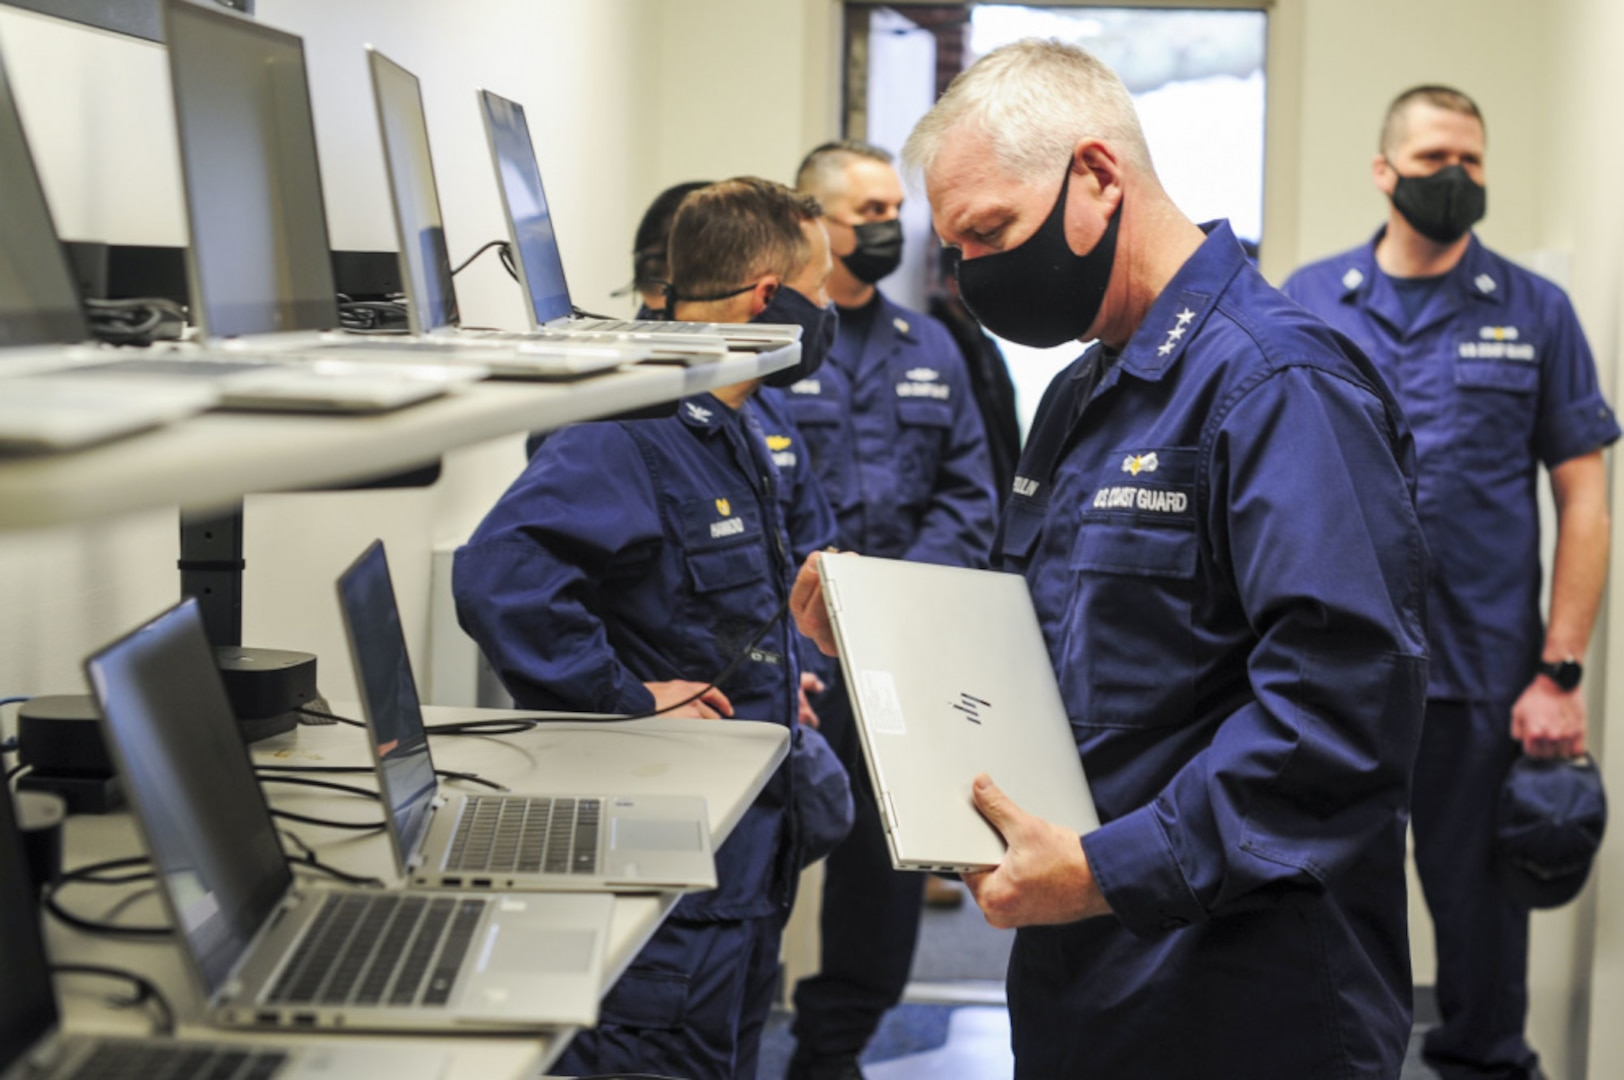 Vice Adm. Steven Poulin, Coast Guard Atlantic Area Commander, interacts with Coast Guard Training Center Yorktown's current technological training equipment, March 23, 2021. Poulin studied the equipment inside one of the training center's server rooms during a recent tour. U.S. Coast Guard photo by Seaman Santiago Gomez.